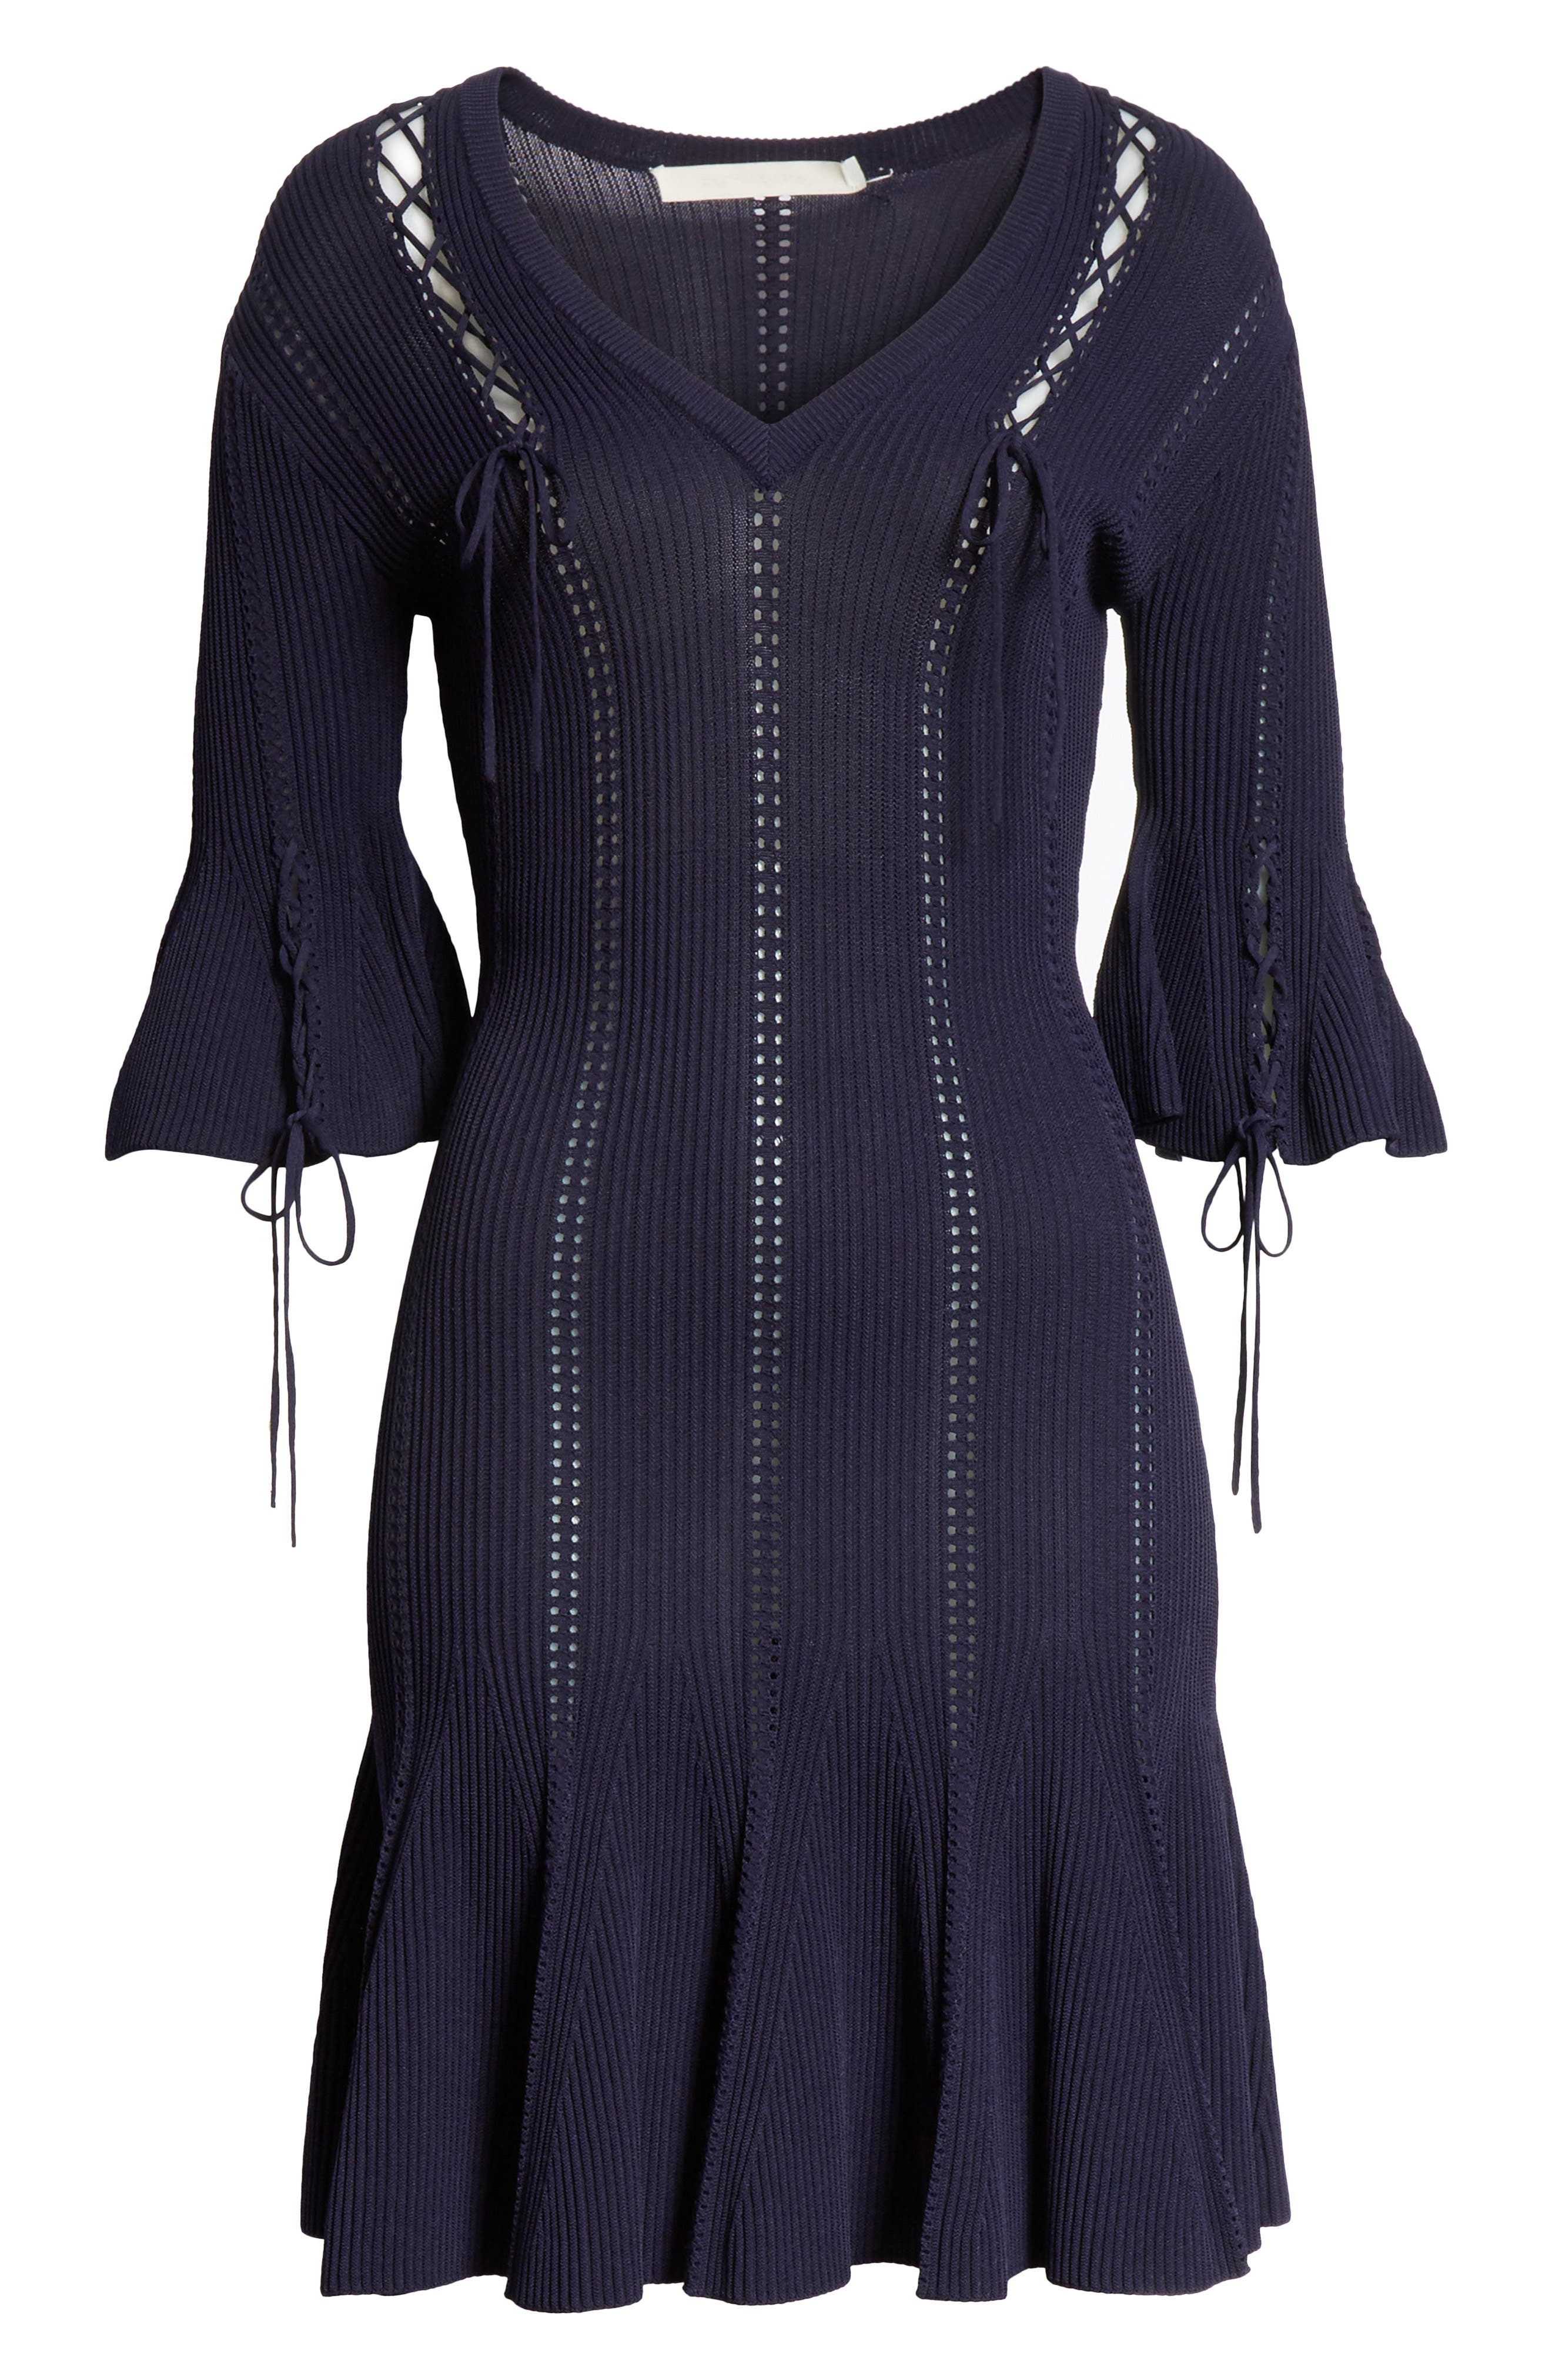 Lace-Up Detail Dress,                             Alternate thumbnail 6, color,                             Midnight